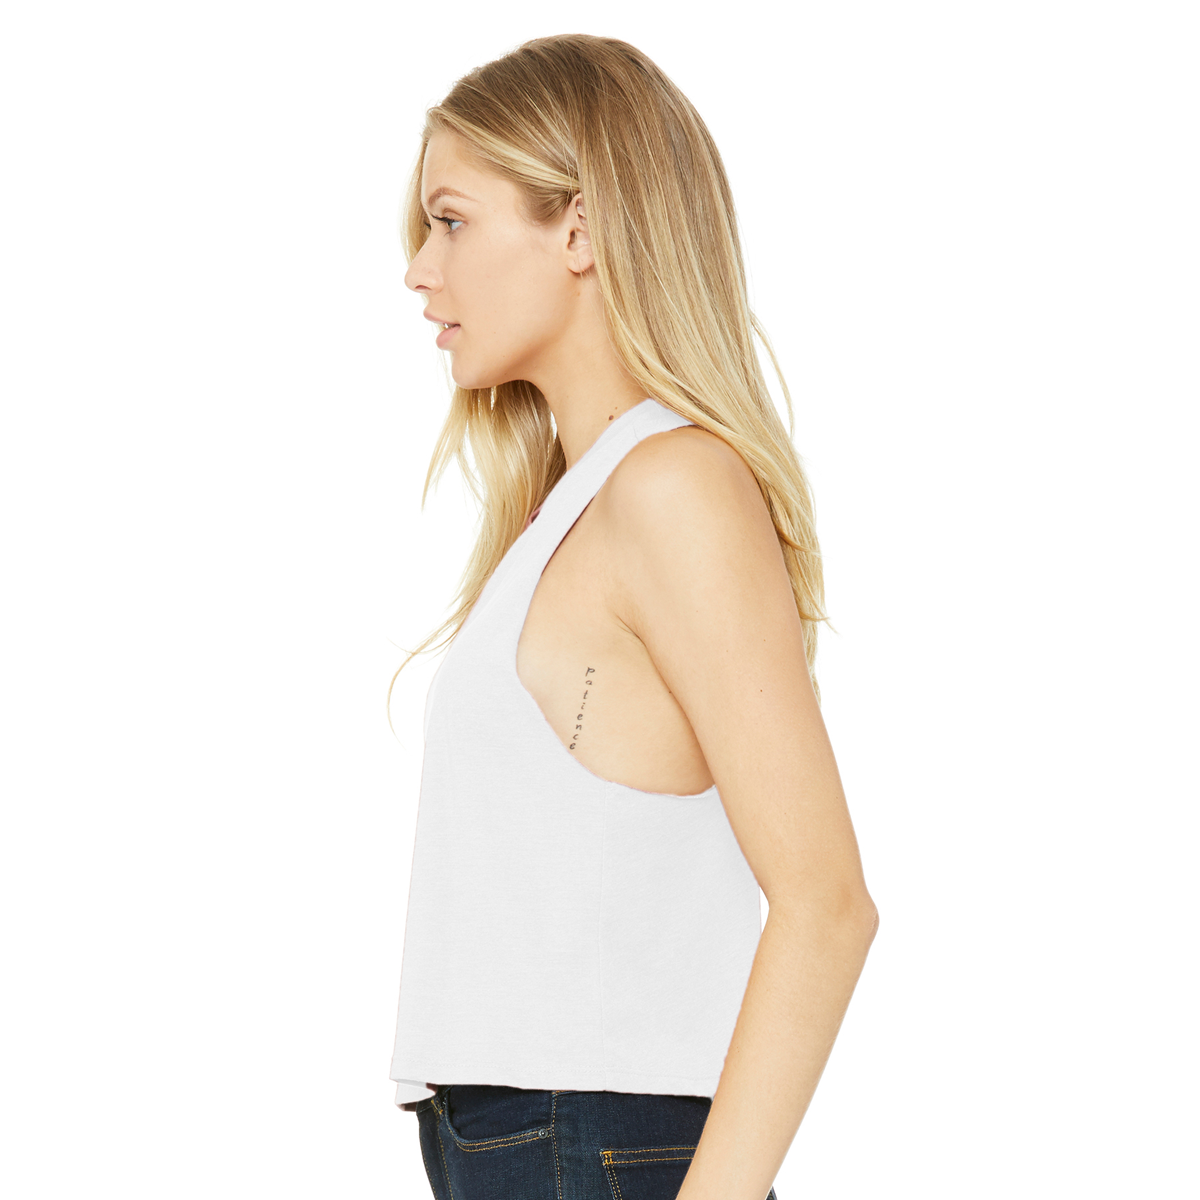 Image of Cat Merch Racer Cropped Vest - now in stock